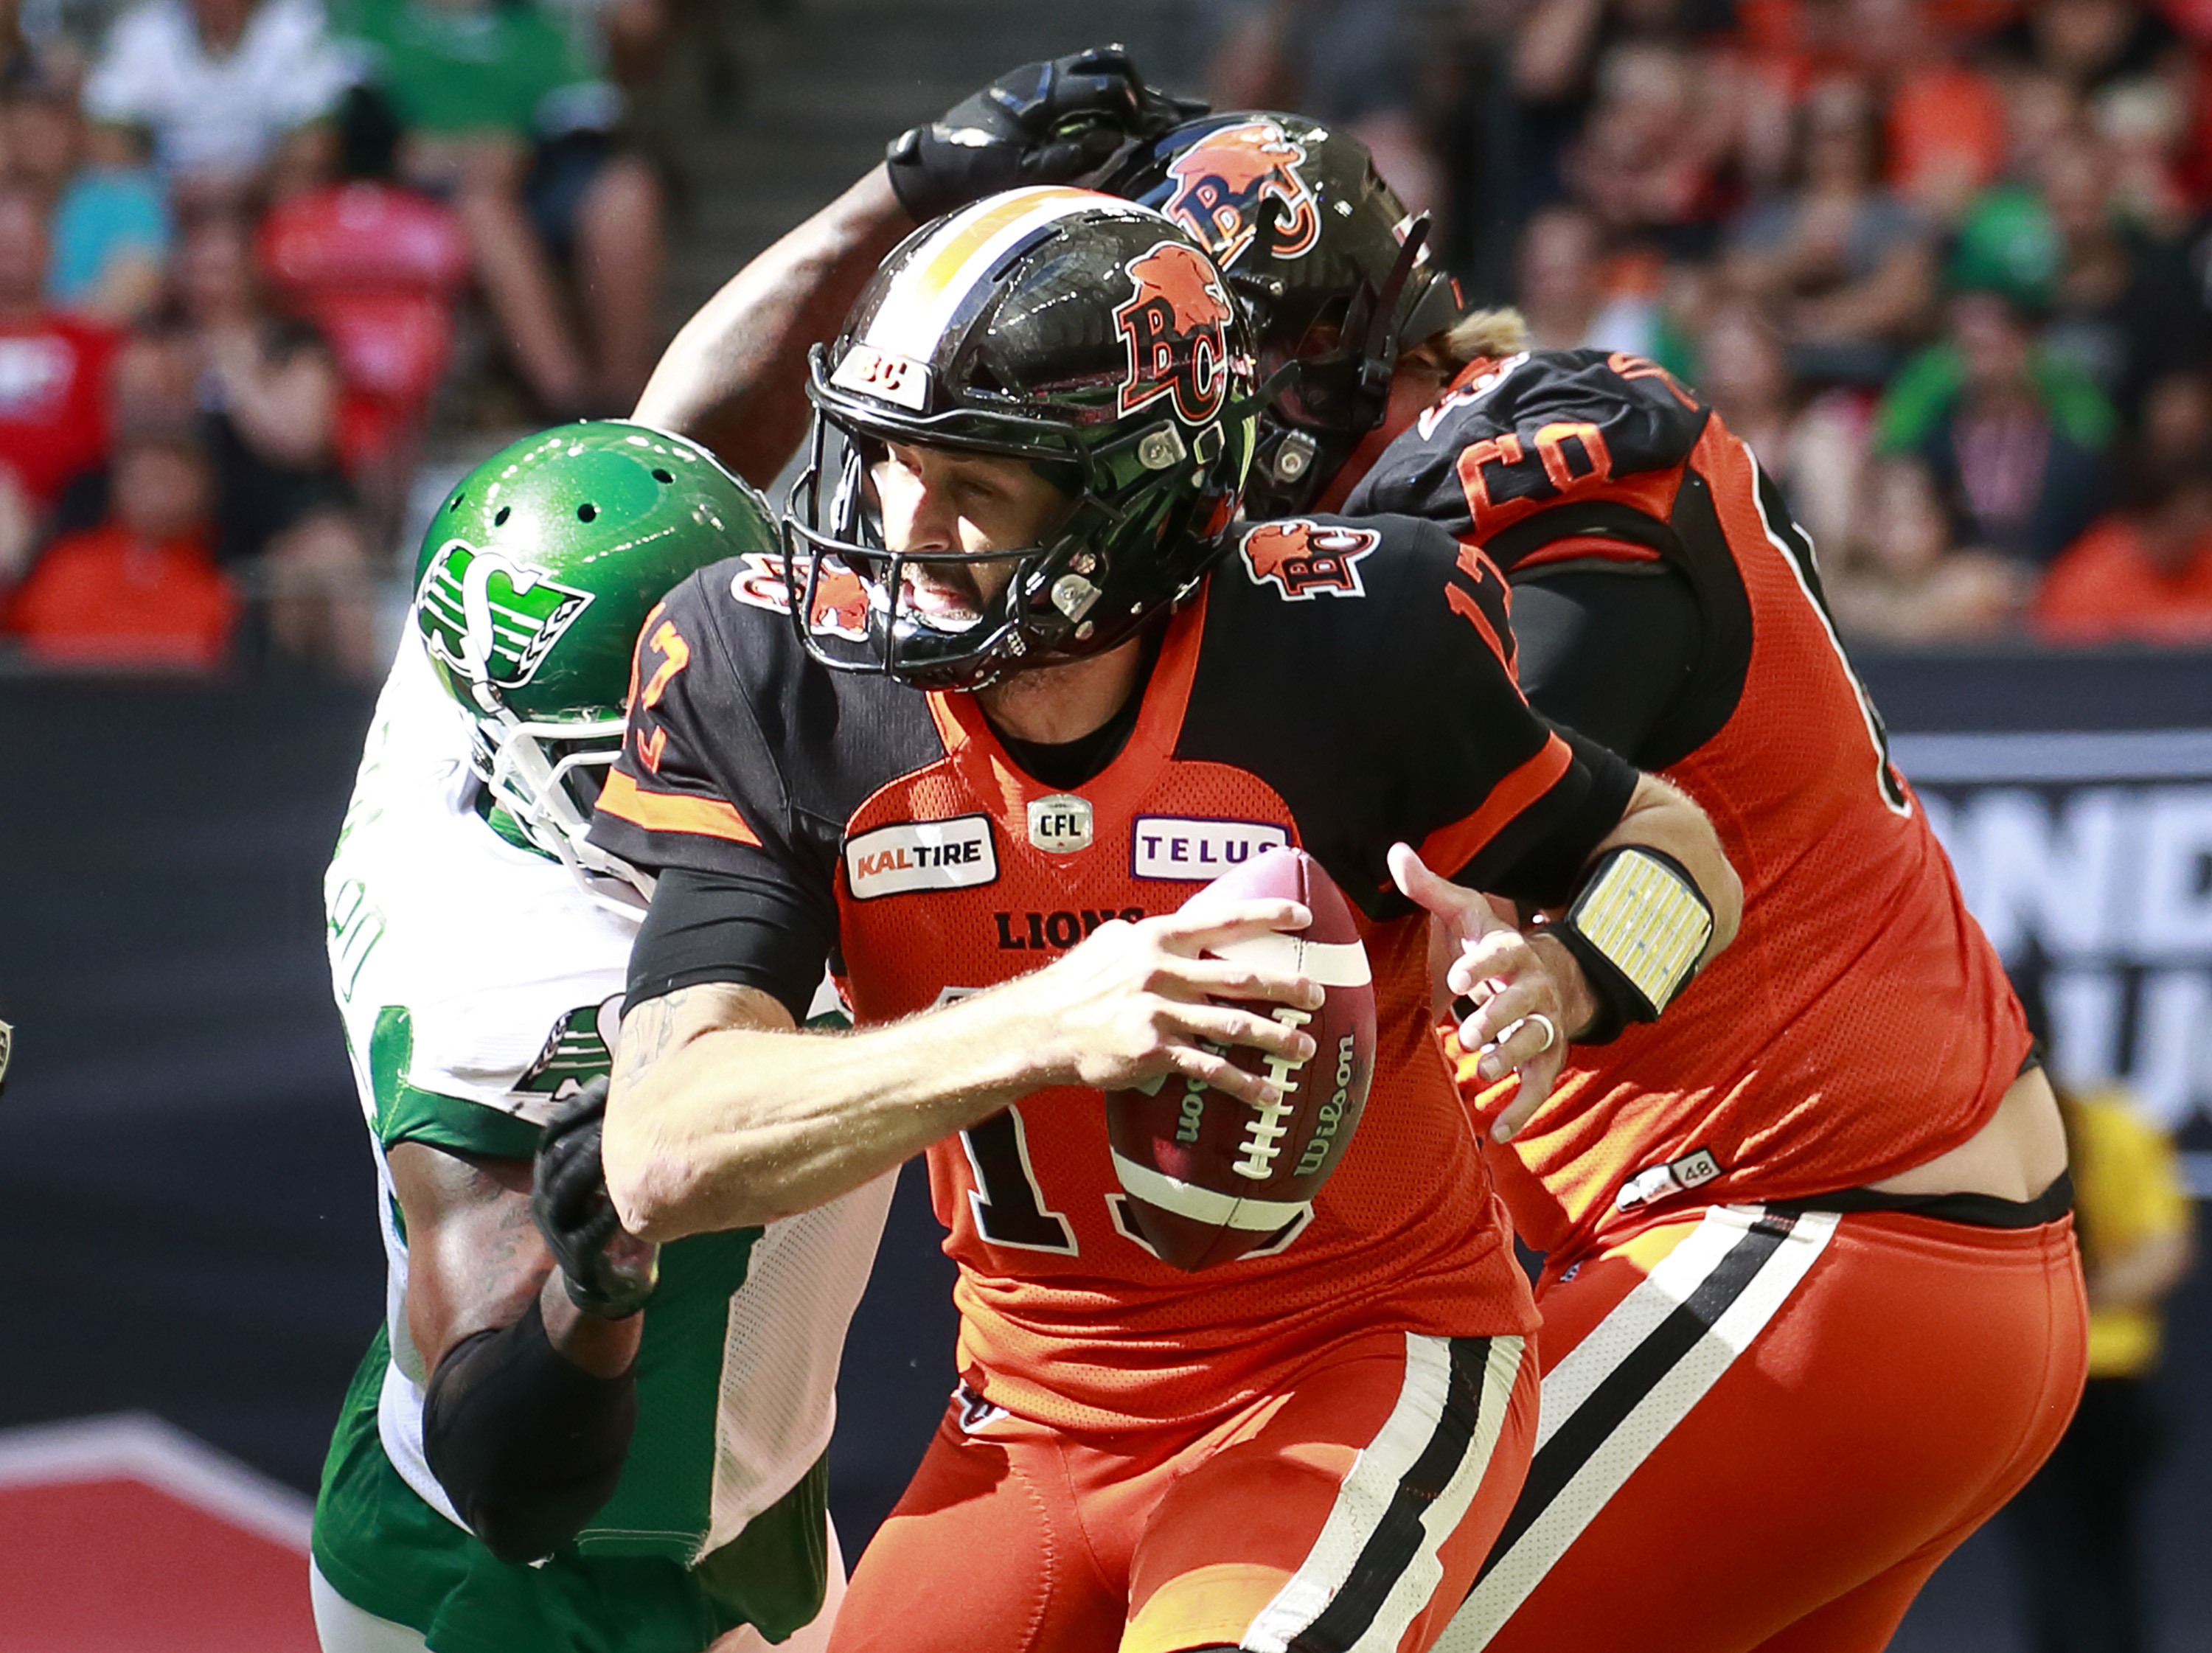 Bake's Game Takes   BC 18 SSK 45 - BC Lions